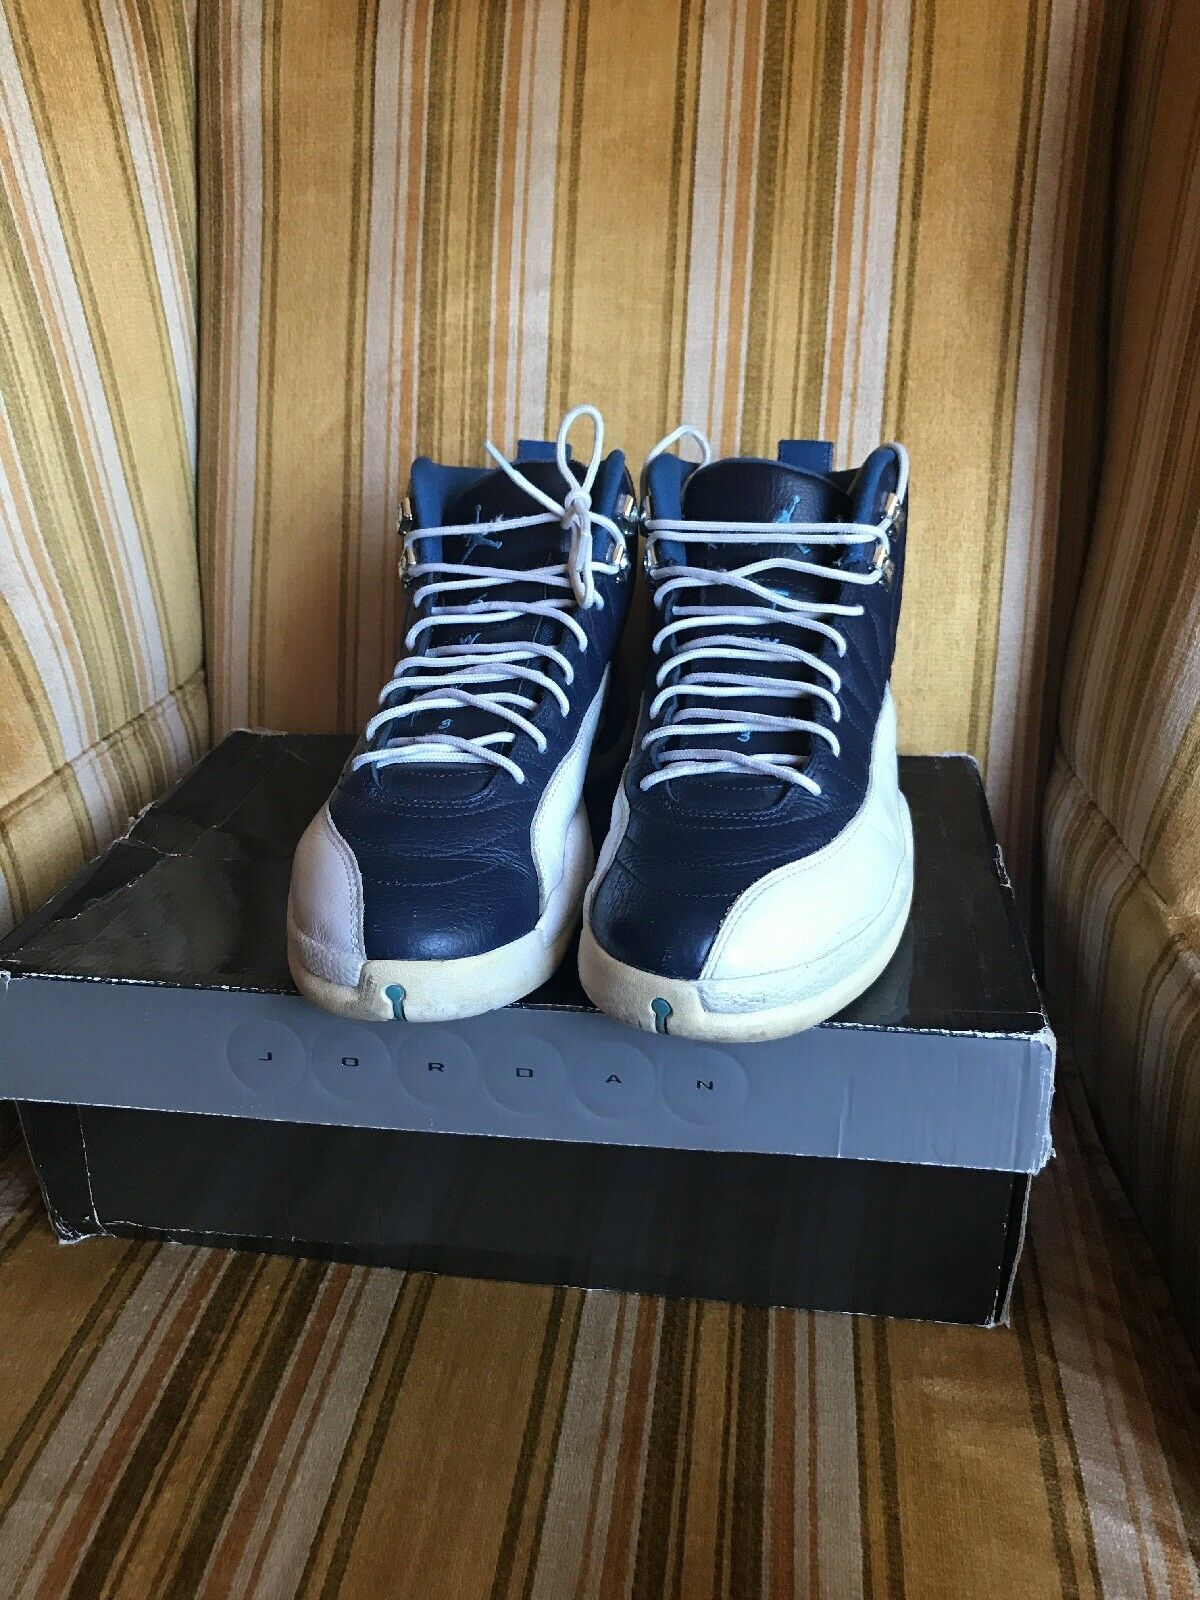 Nike Jordan retro 12  Cheap and fashionable